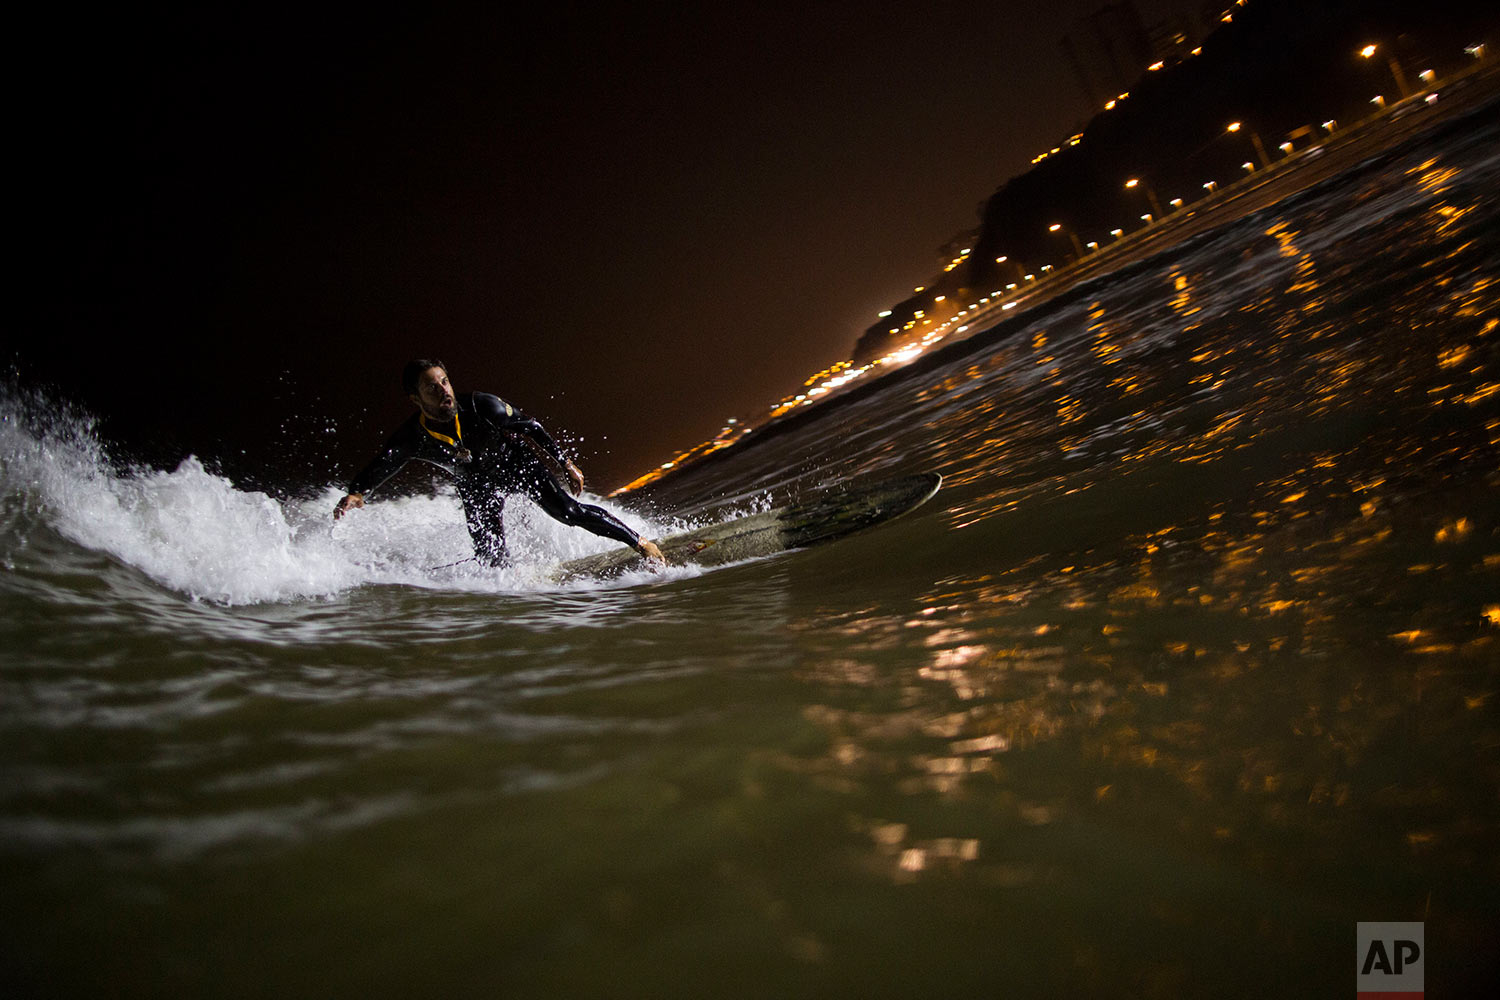 Ernesto Benavides rides a wave in the waters of La Pampilla beach in Lima, Peru, April 26, 2017. As most Lima residents prepare to sleep, a handful of hardcore surfers descend on the only beach in Peru where they can ride the waves at night. (AP Photo/Rodrigo Abd)